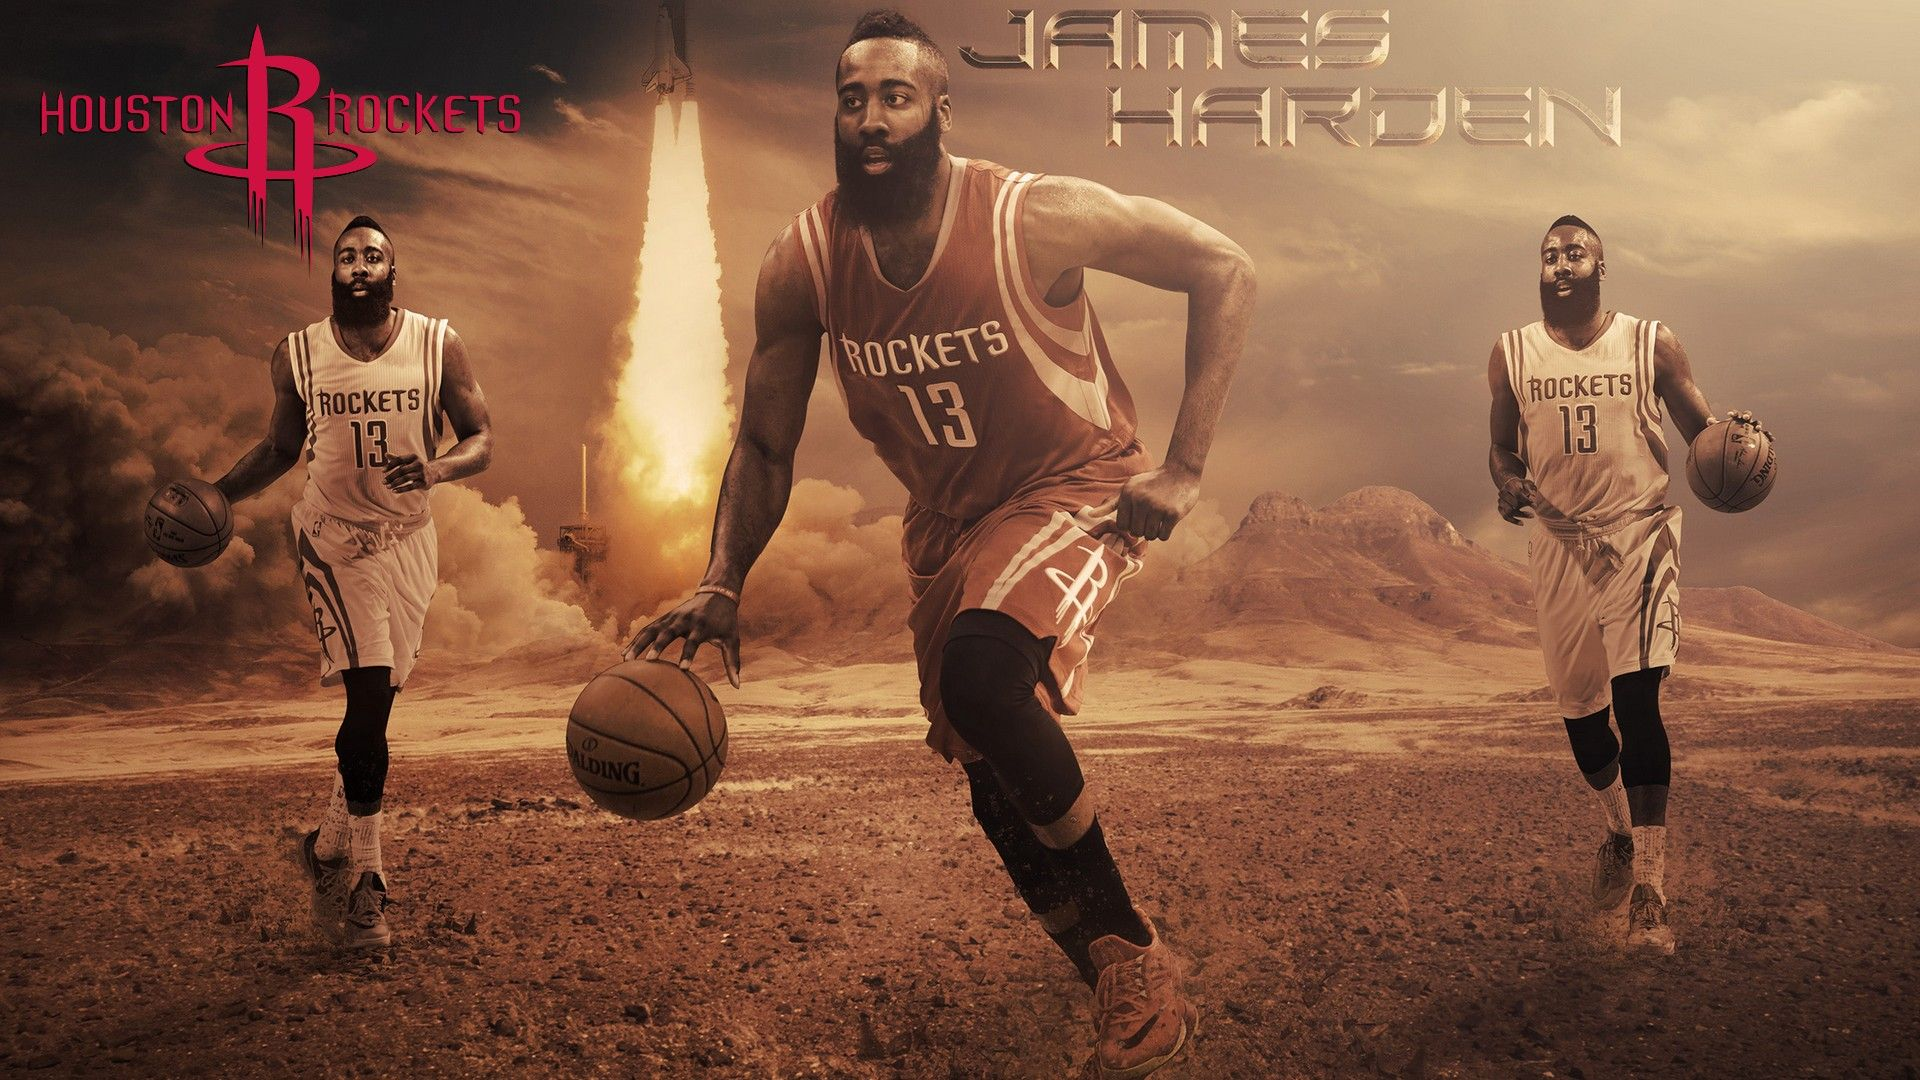 Hd Desktop Wallpaper James Harden James Harden Nba Wallpapers Houston Rockets